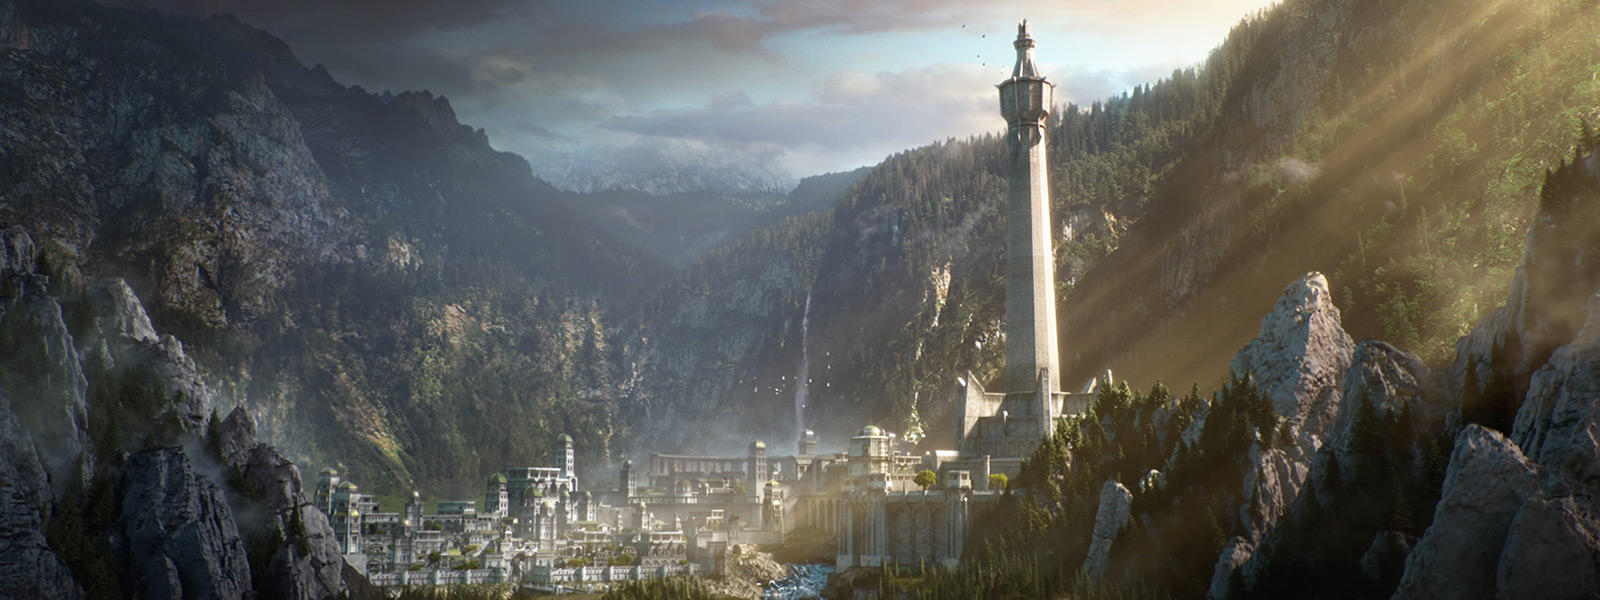 Solen skiner på den vita marmorstaden Minas Ithil från spelet Middle-earth: Shadow of War